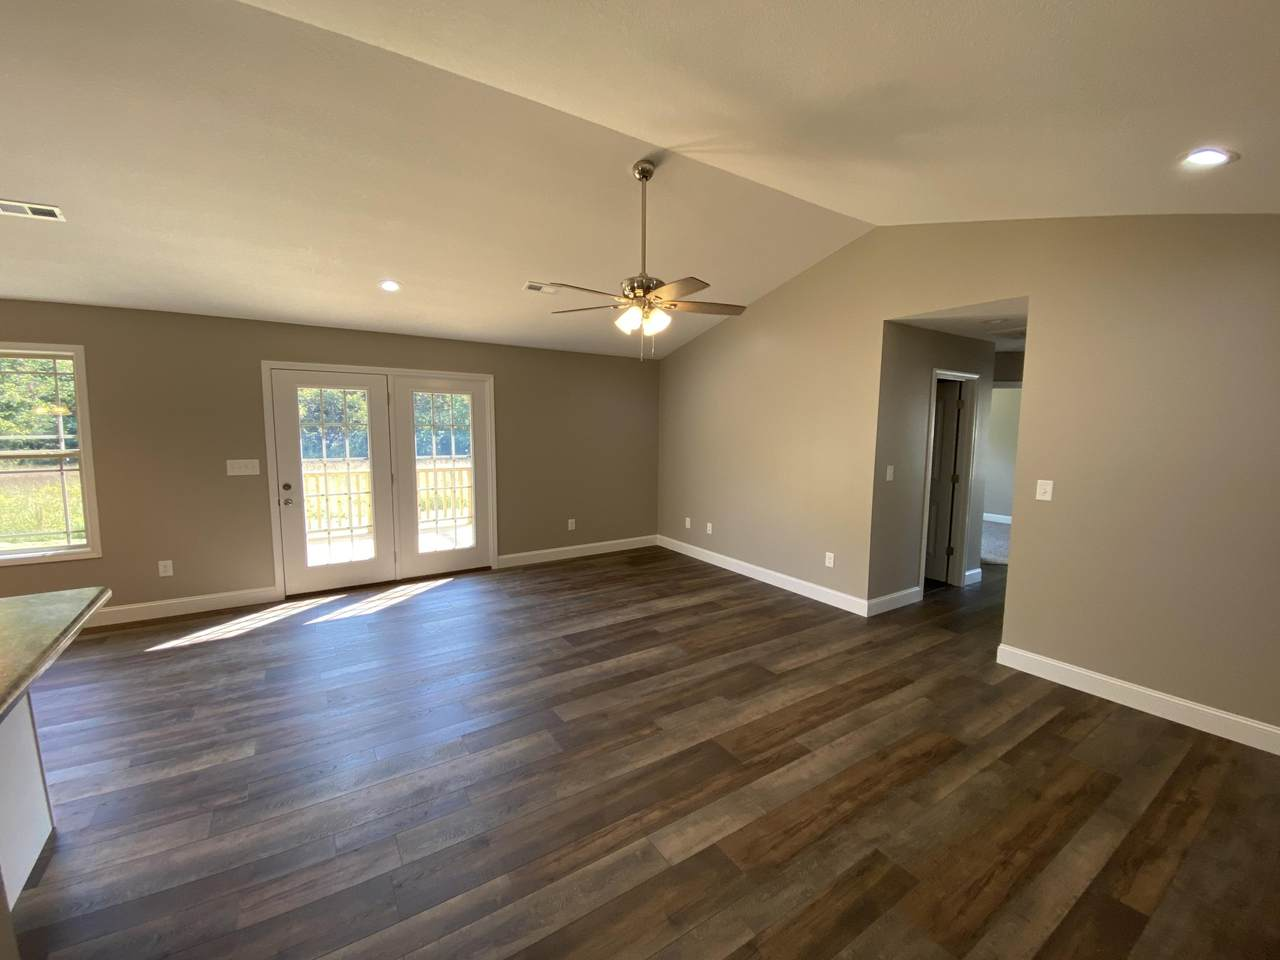 https://bt-photos.global.ssl.fastly.net/kaar/1280_boomver_3_1131997-2.jpg